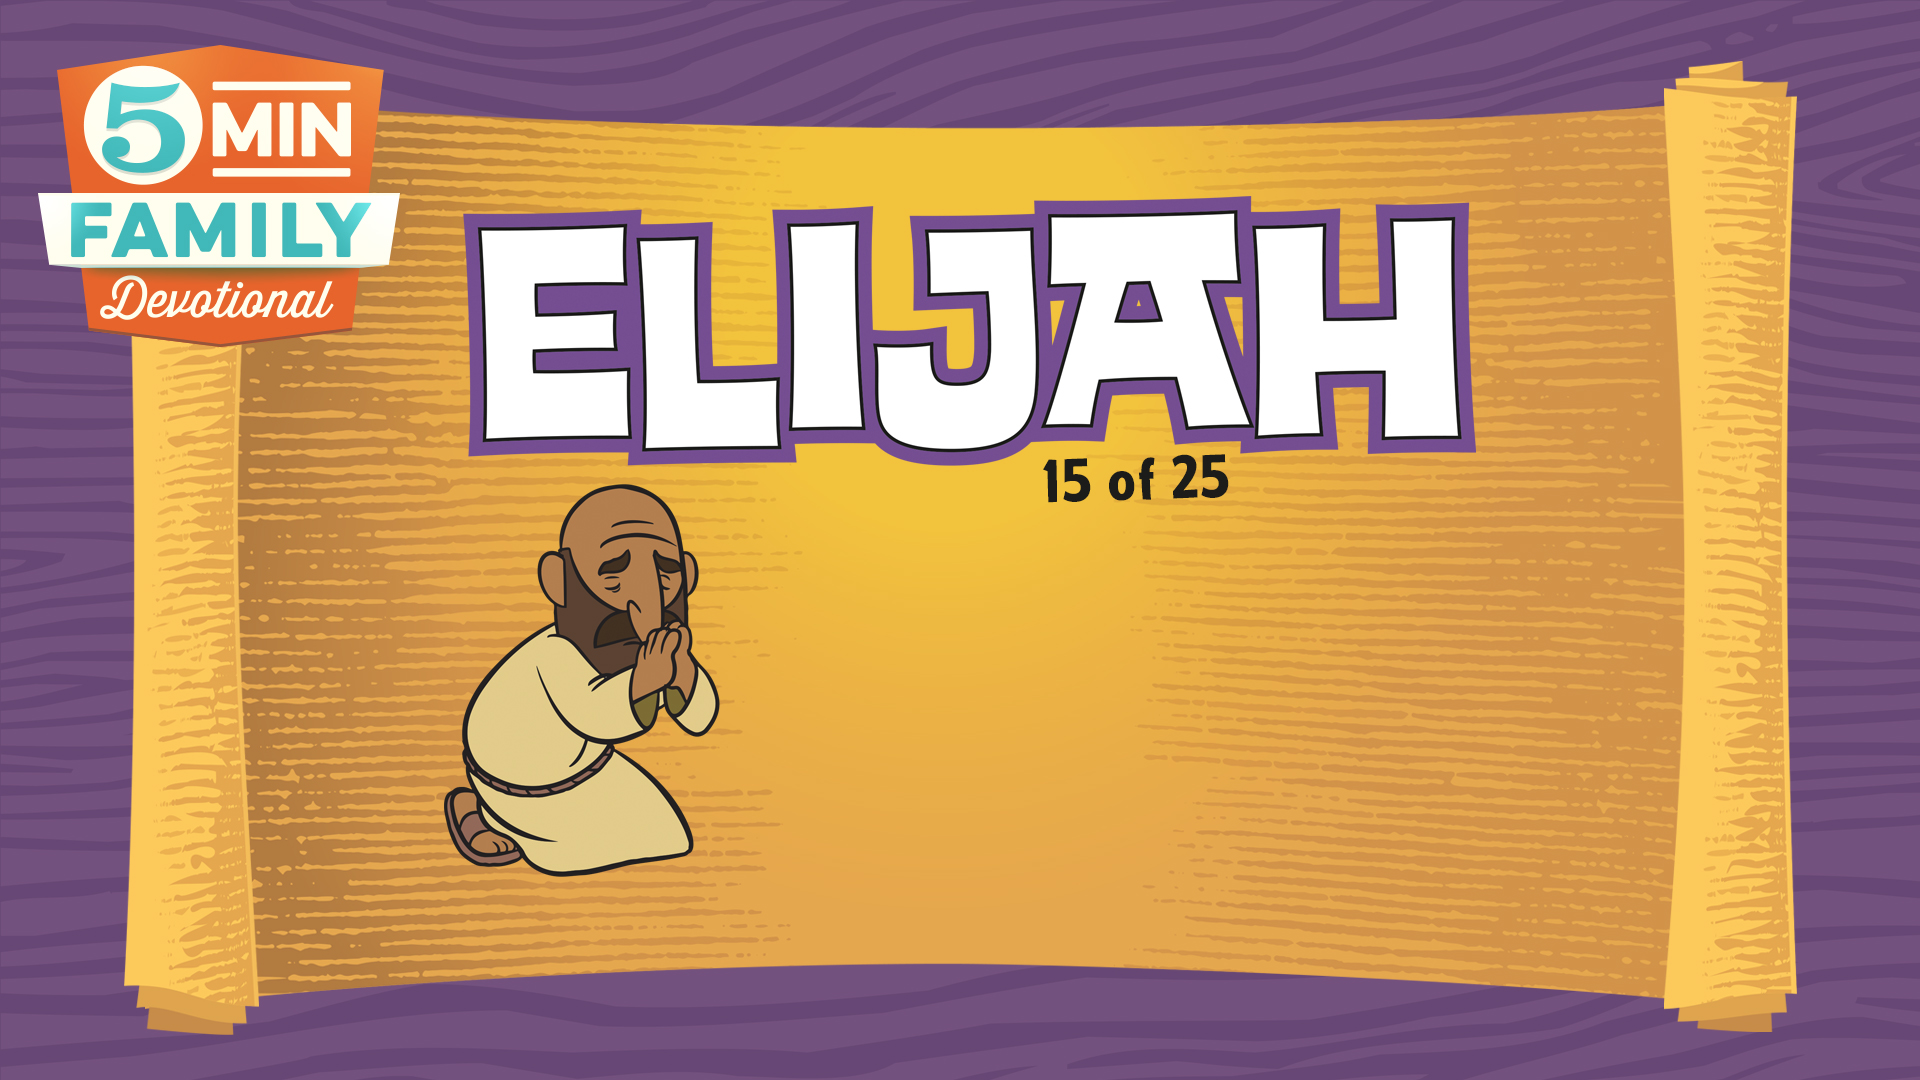 Elijah god proved he is real